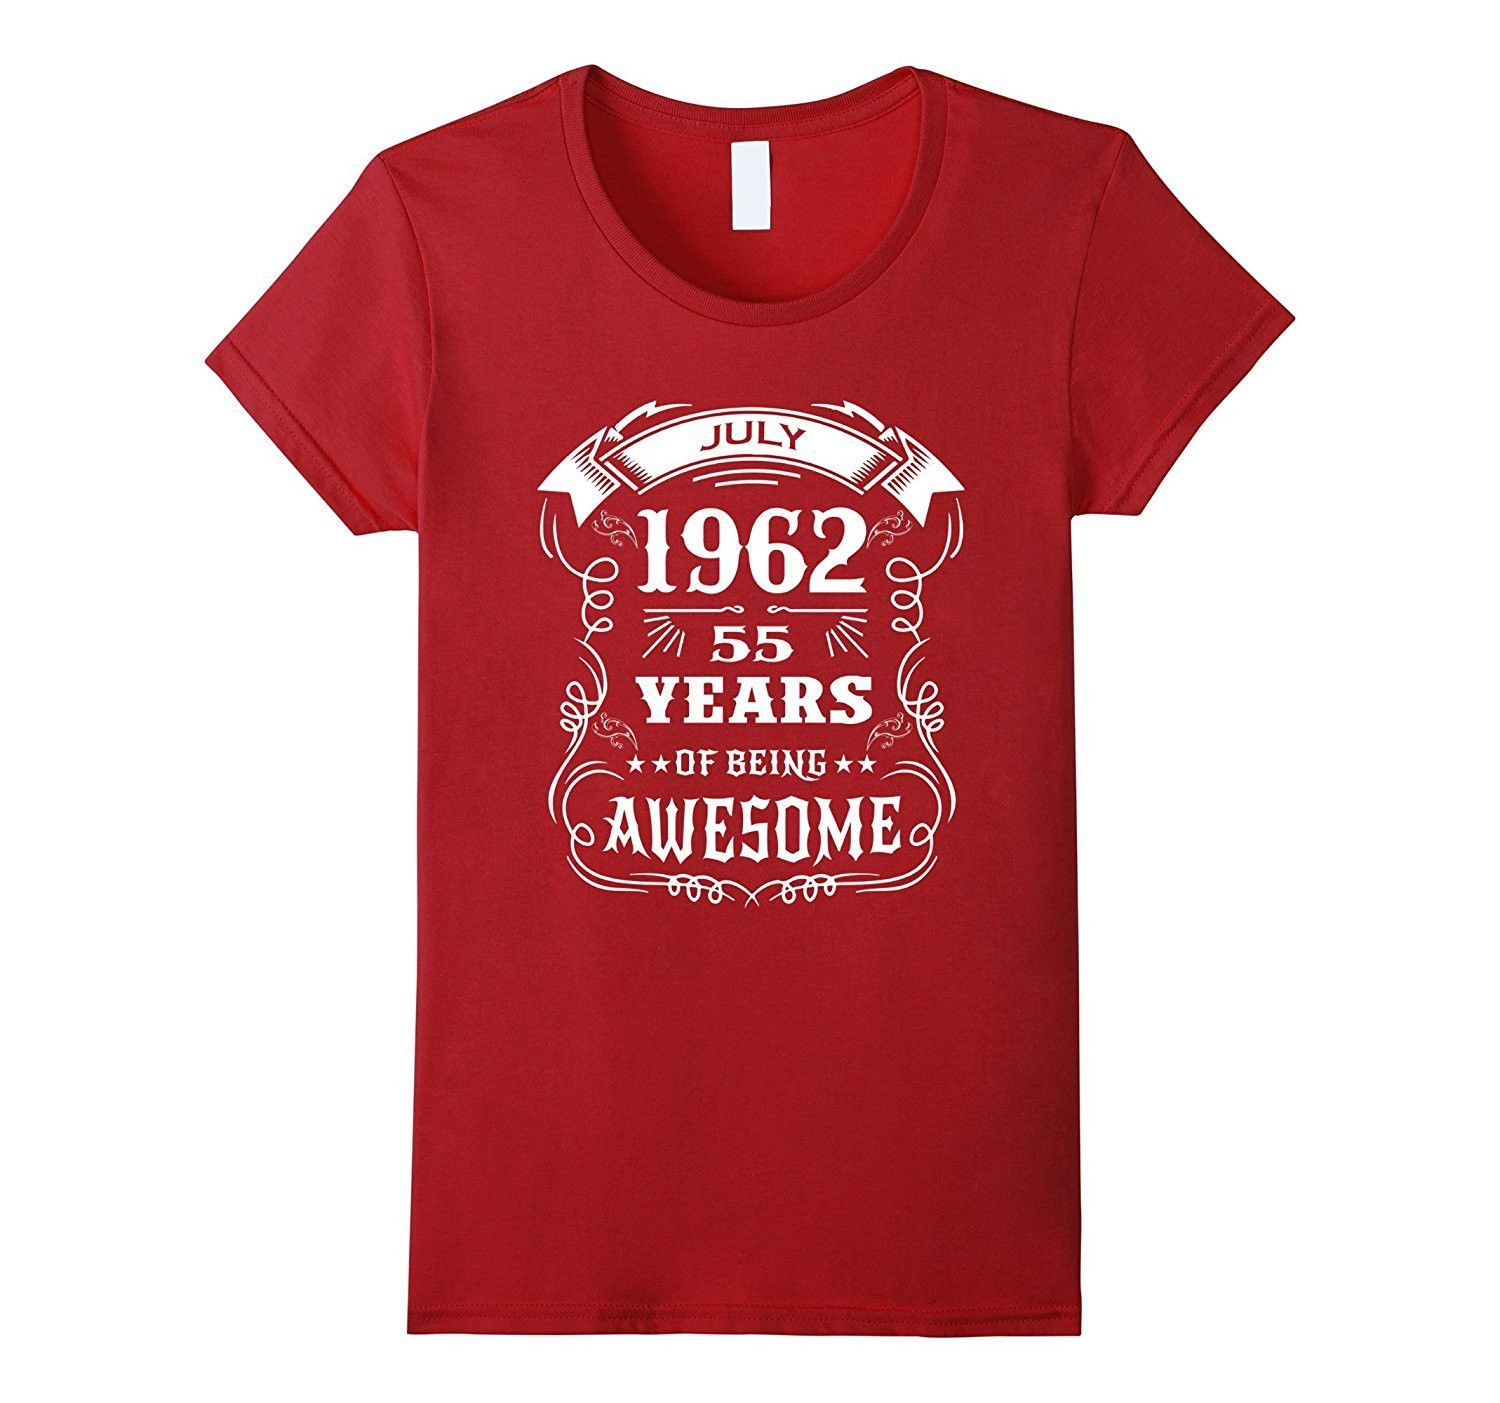 Born in July 1962 55 years of being awesome T-Shirt